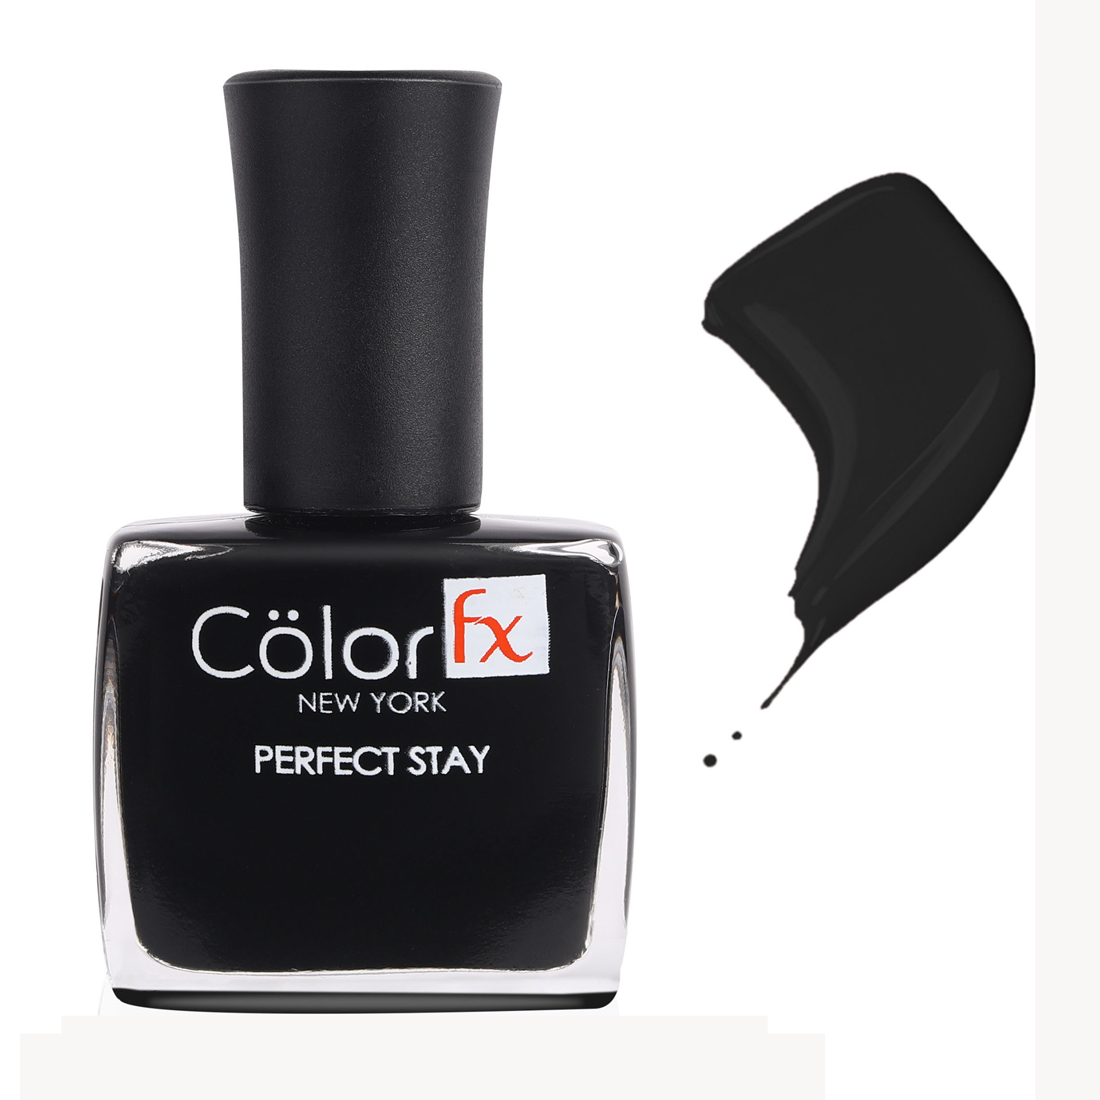 Color Fx   Color Fx Perfect Stay Basic Collection Nail Enamel, Shade-119